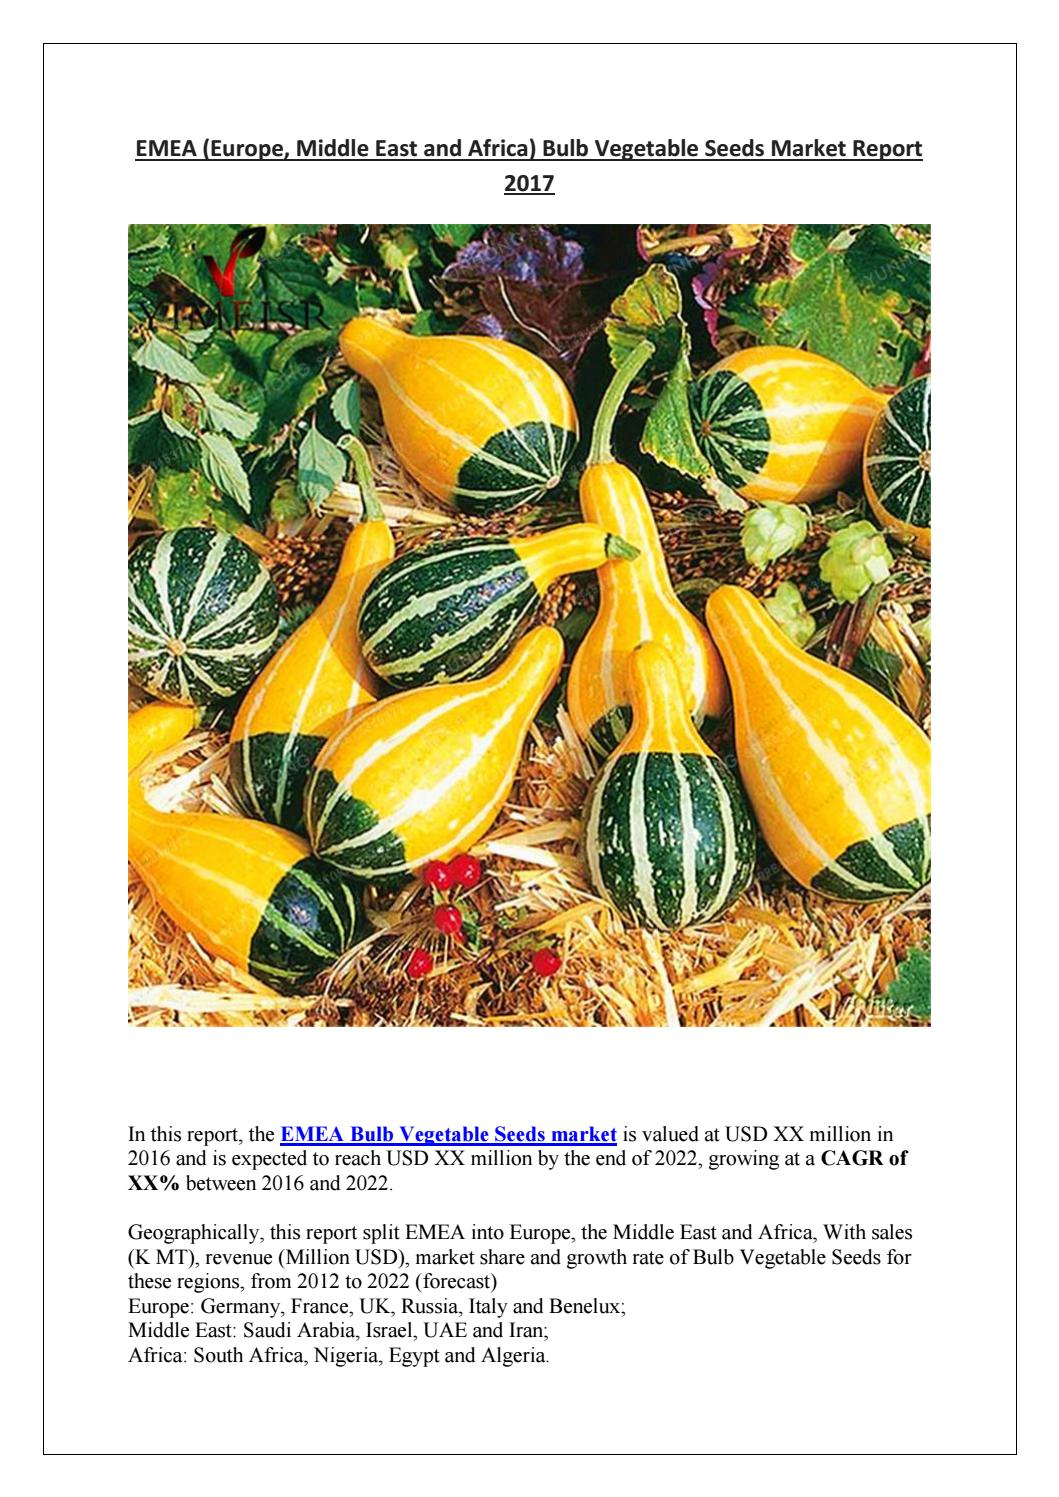 Emea (europe, middle east and africa) bulb vegetable seeds market